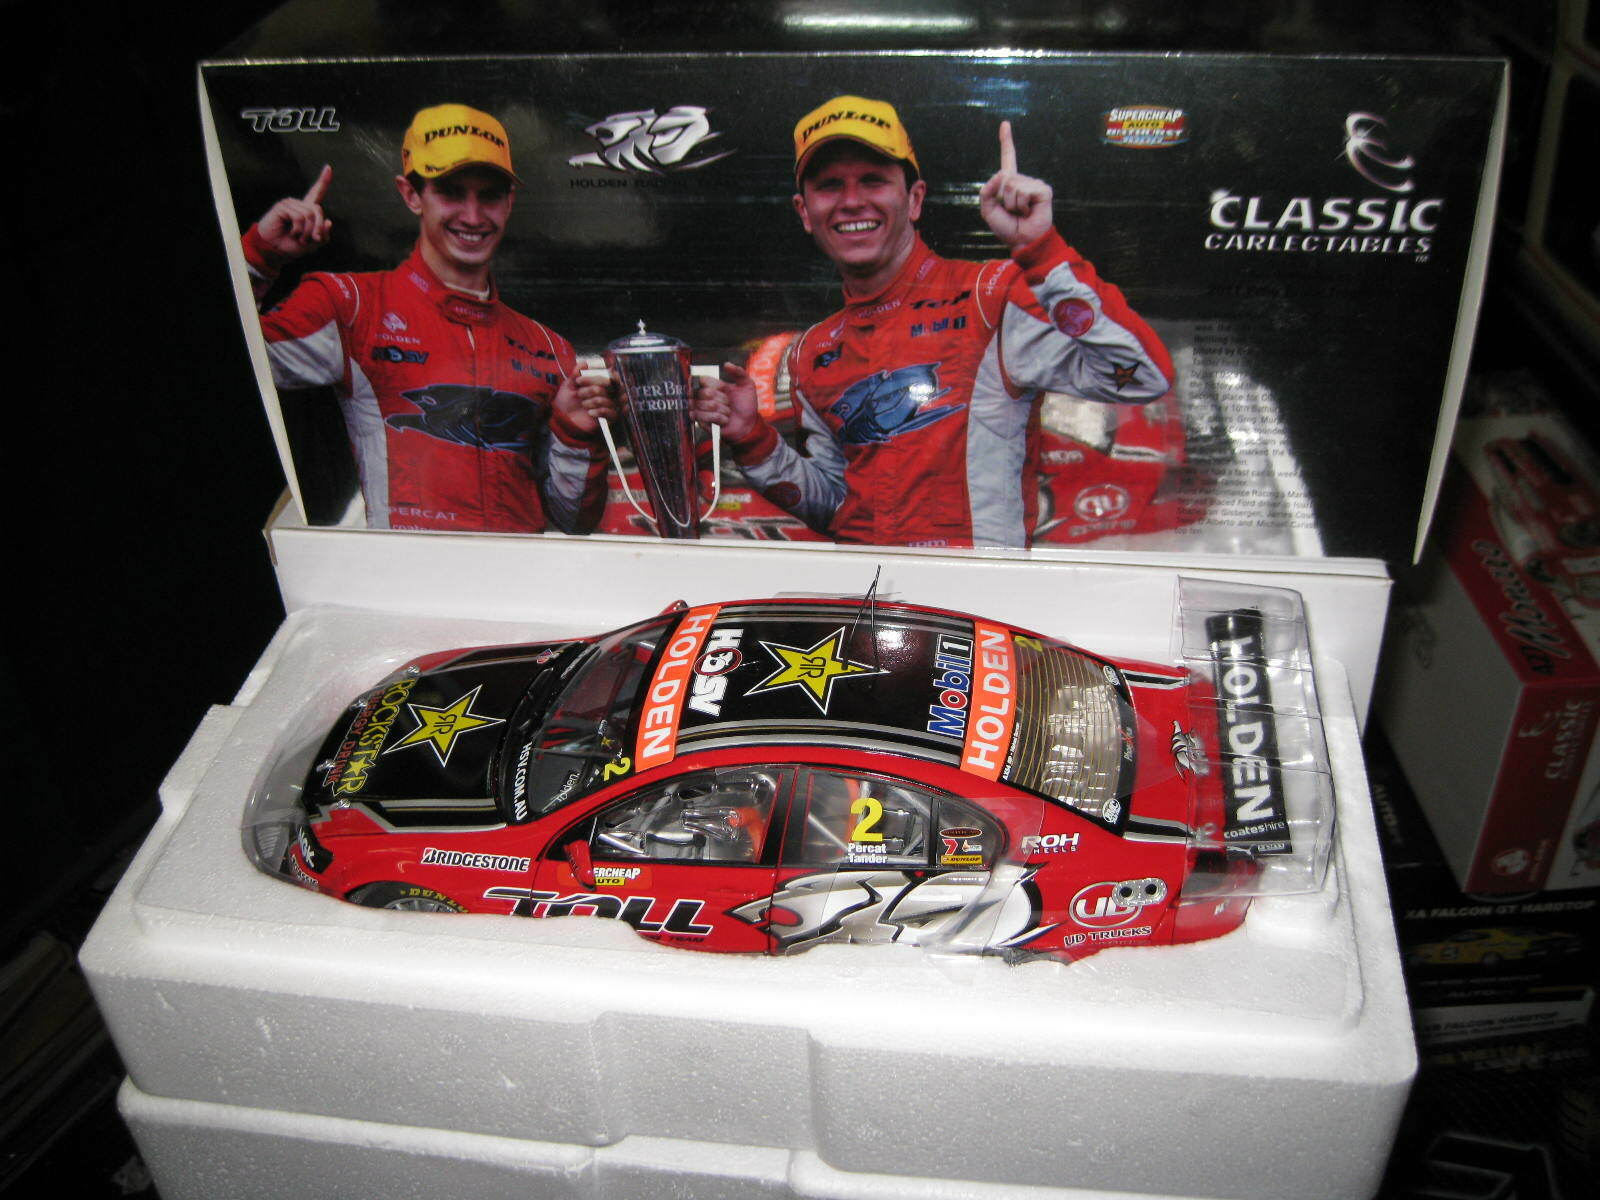 1/18 CLASSIC BATHURST WINNER 2011 HRT HOLDEN COMMODORE VE TANDER PERCAT #18488